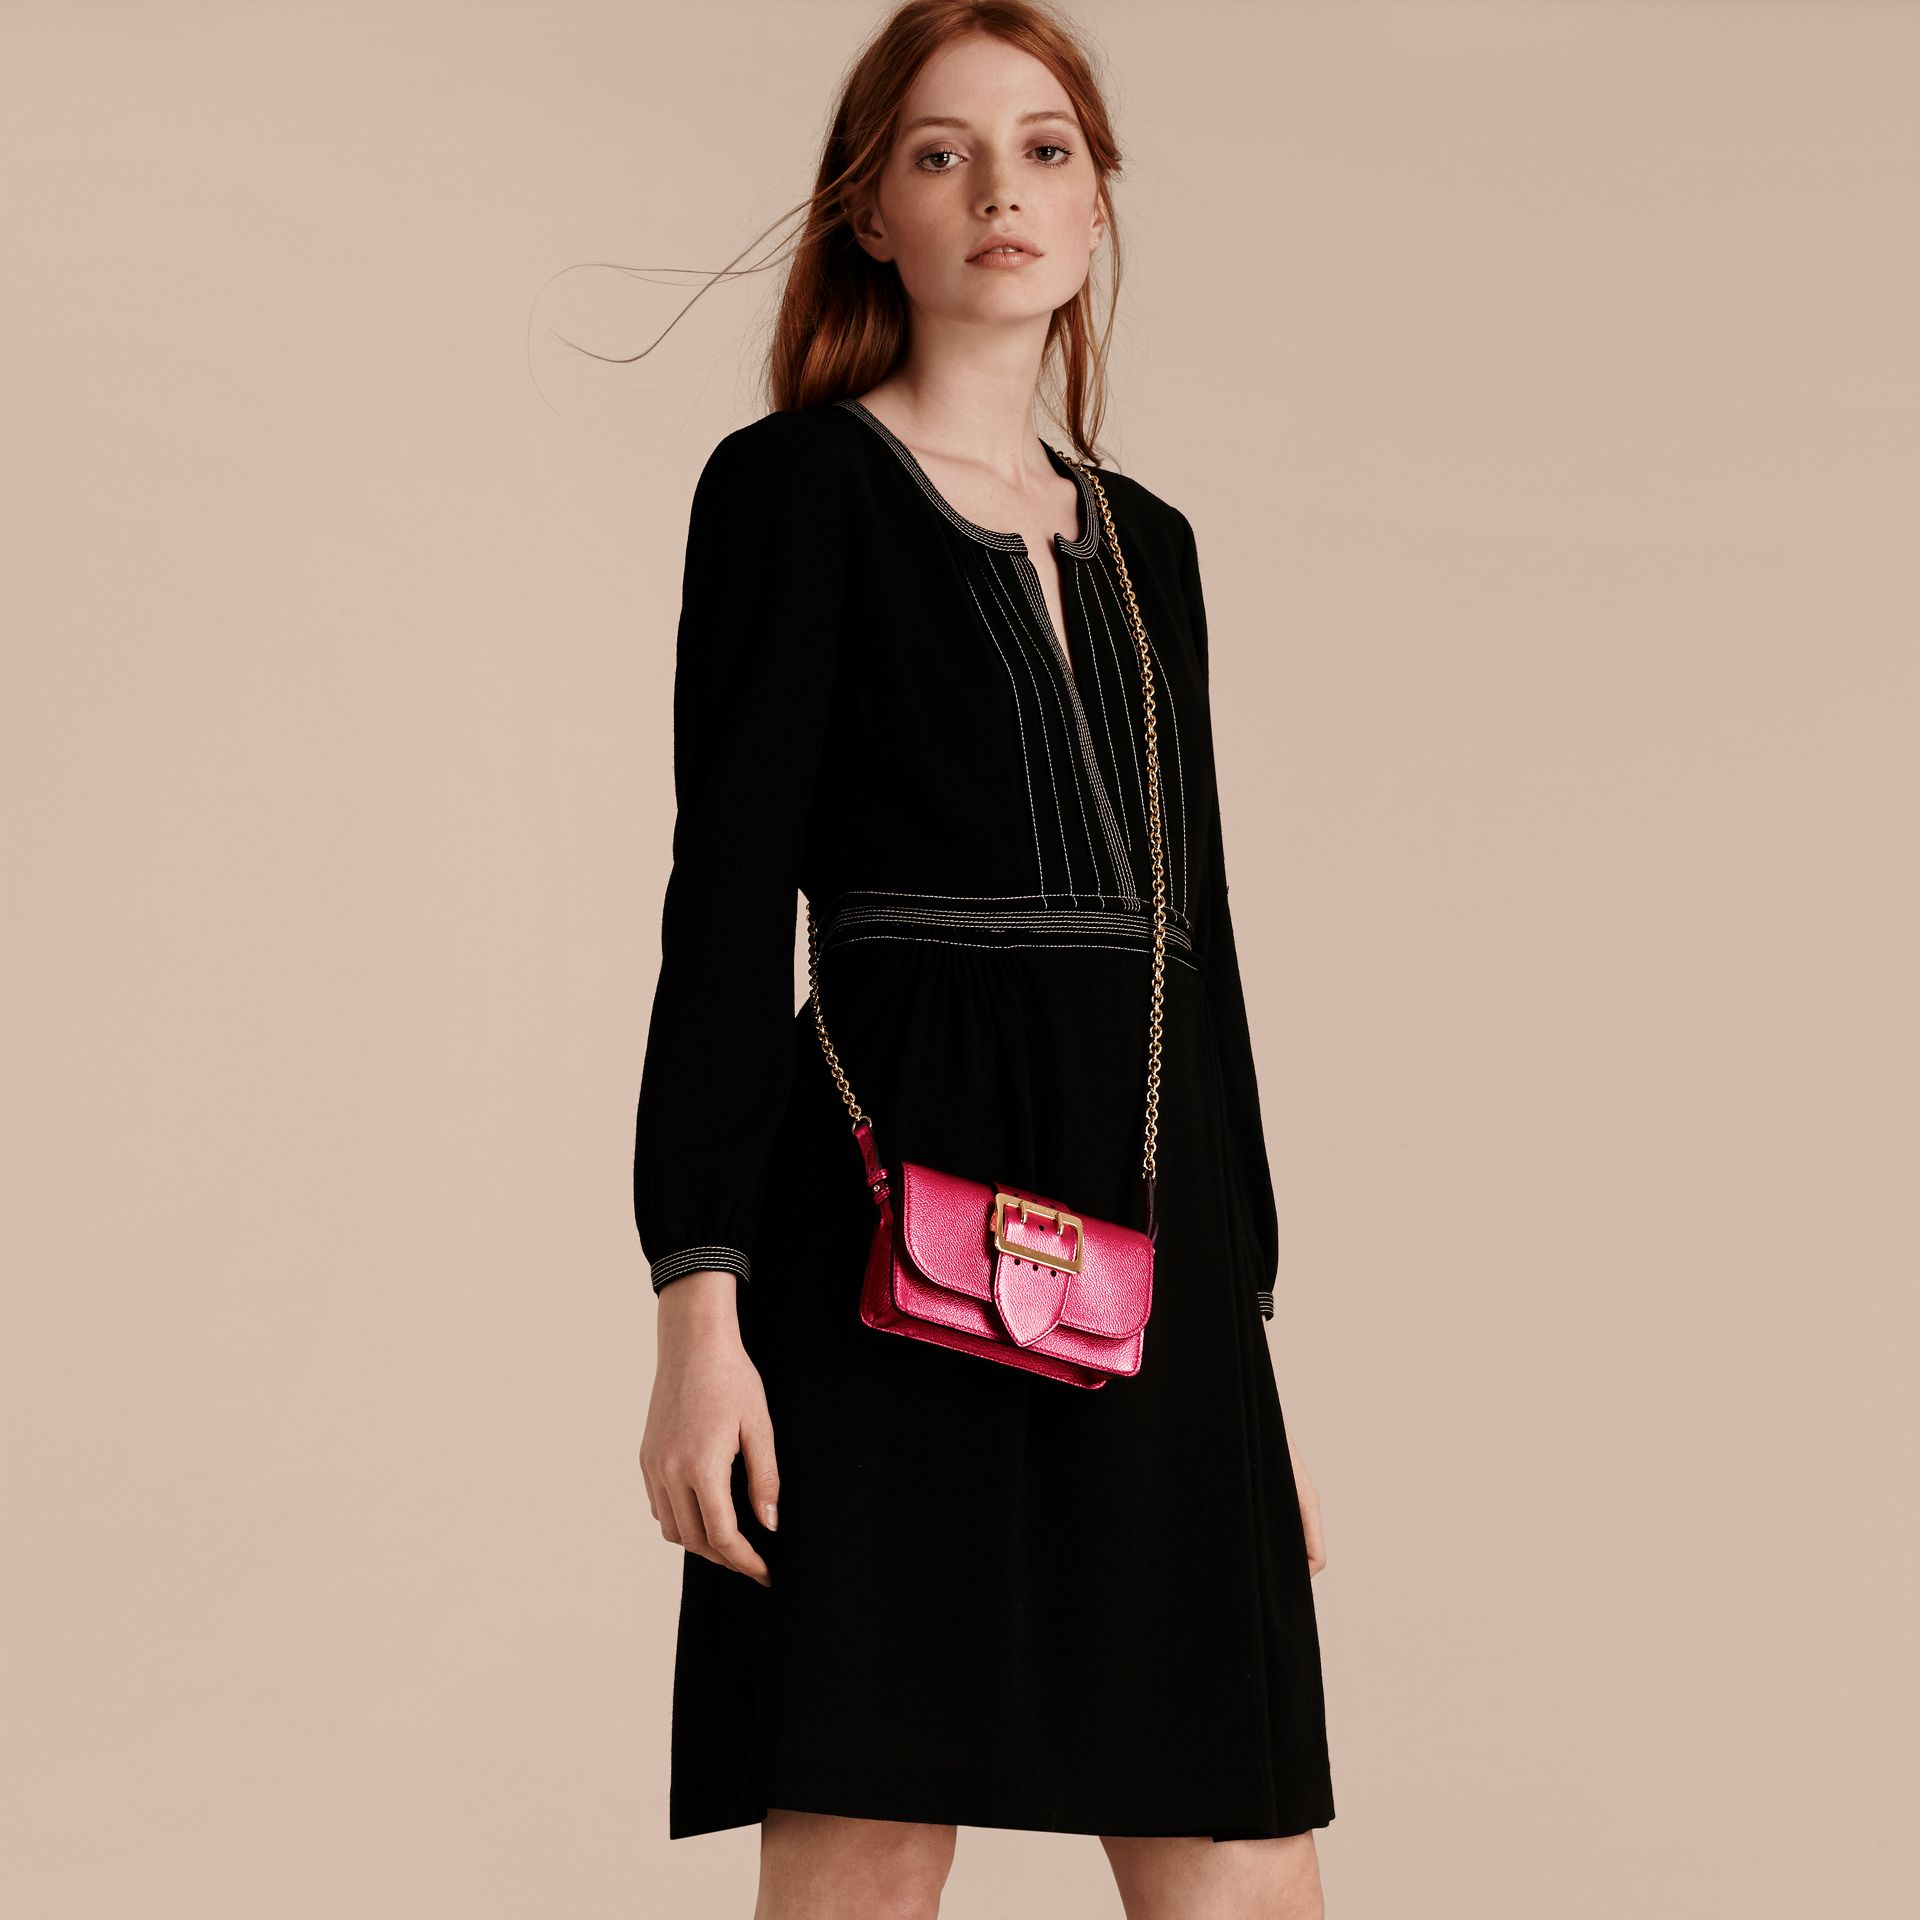 The Mini Buckle Bag in Metallic Grainy Leather in Bright Pink - gallery image 3